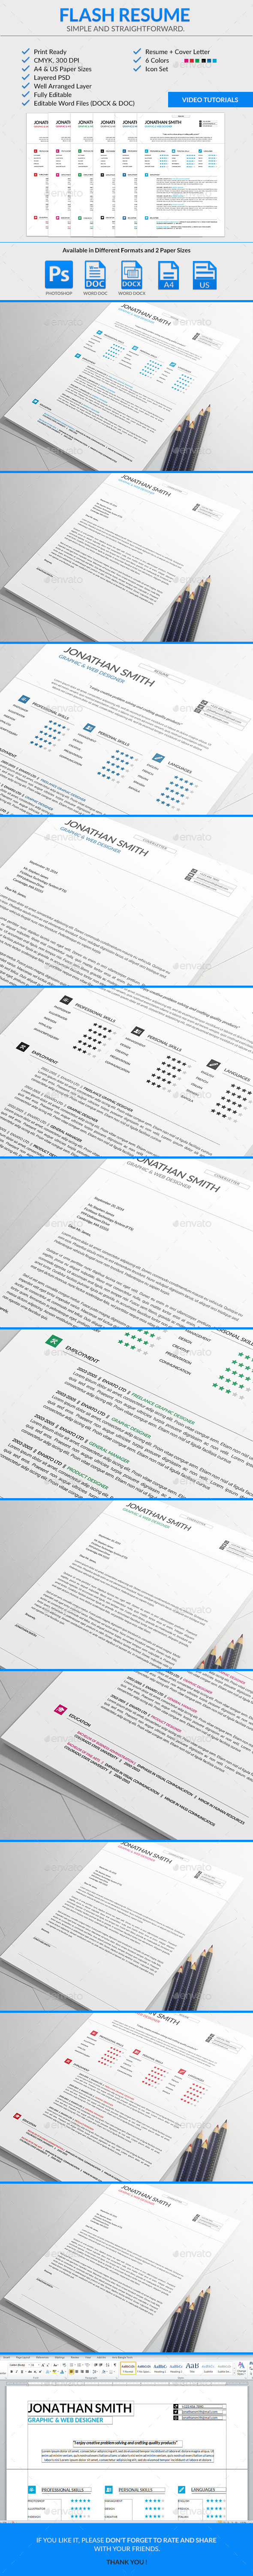 GraphicRiver Flash Resume Template 9248288